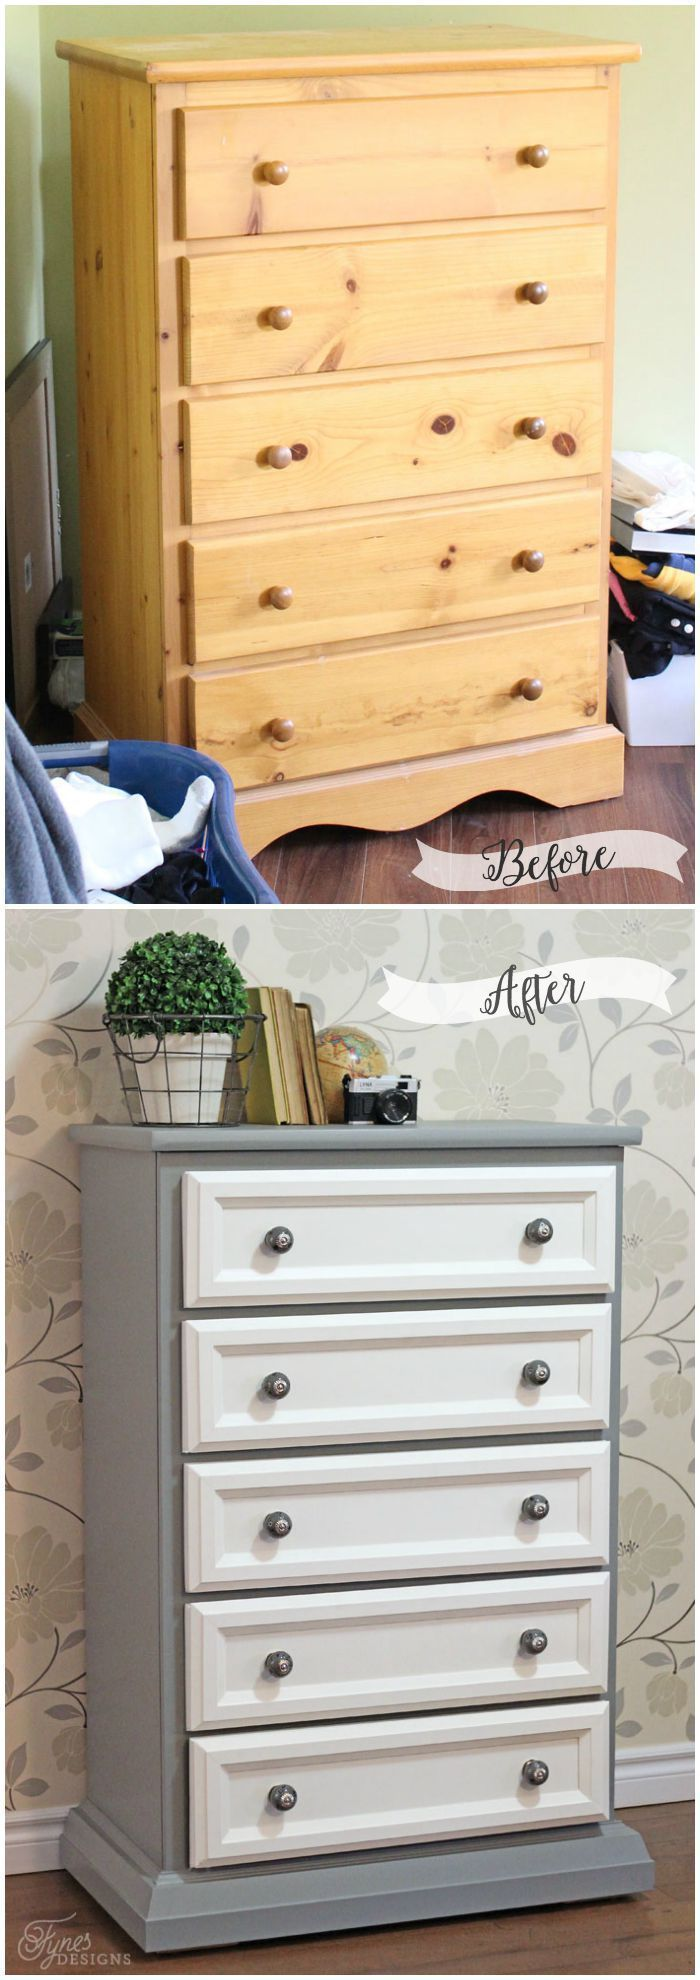 Antique Dresser: Learn How t Use this Mobile Joker